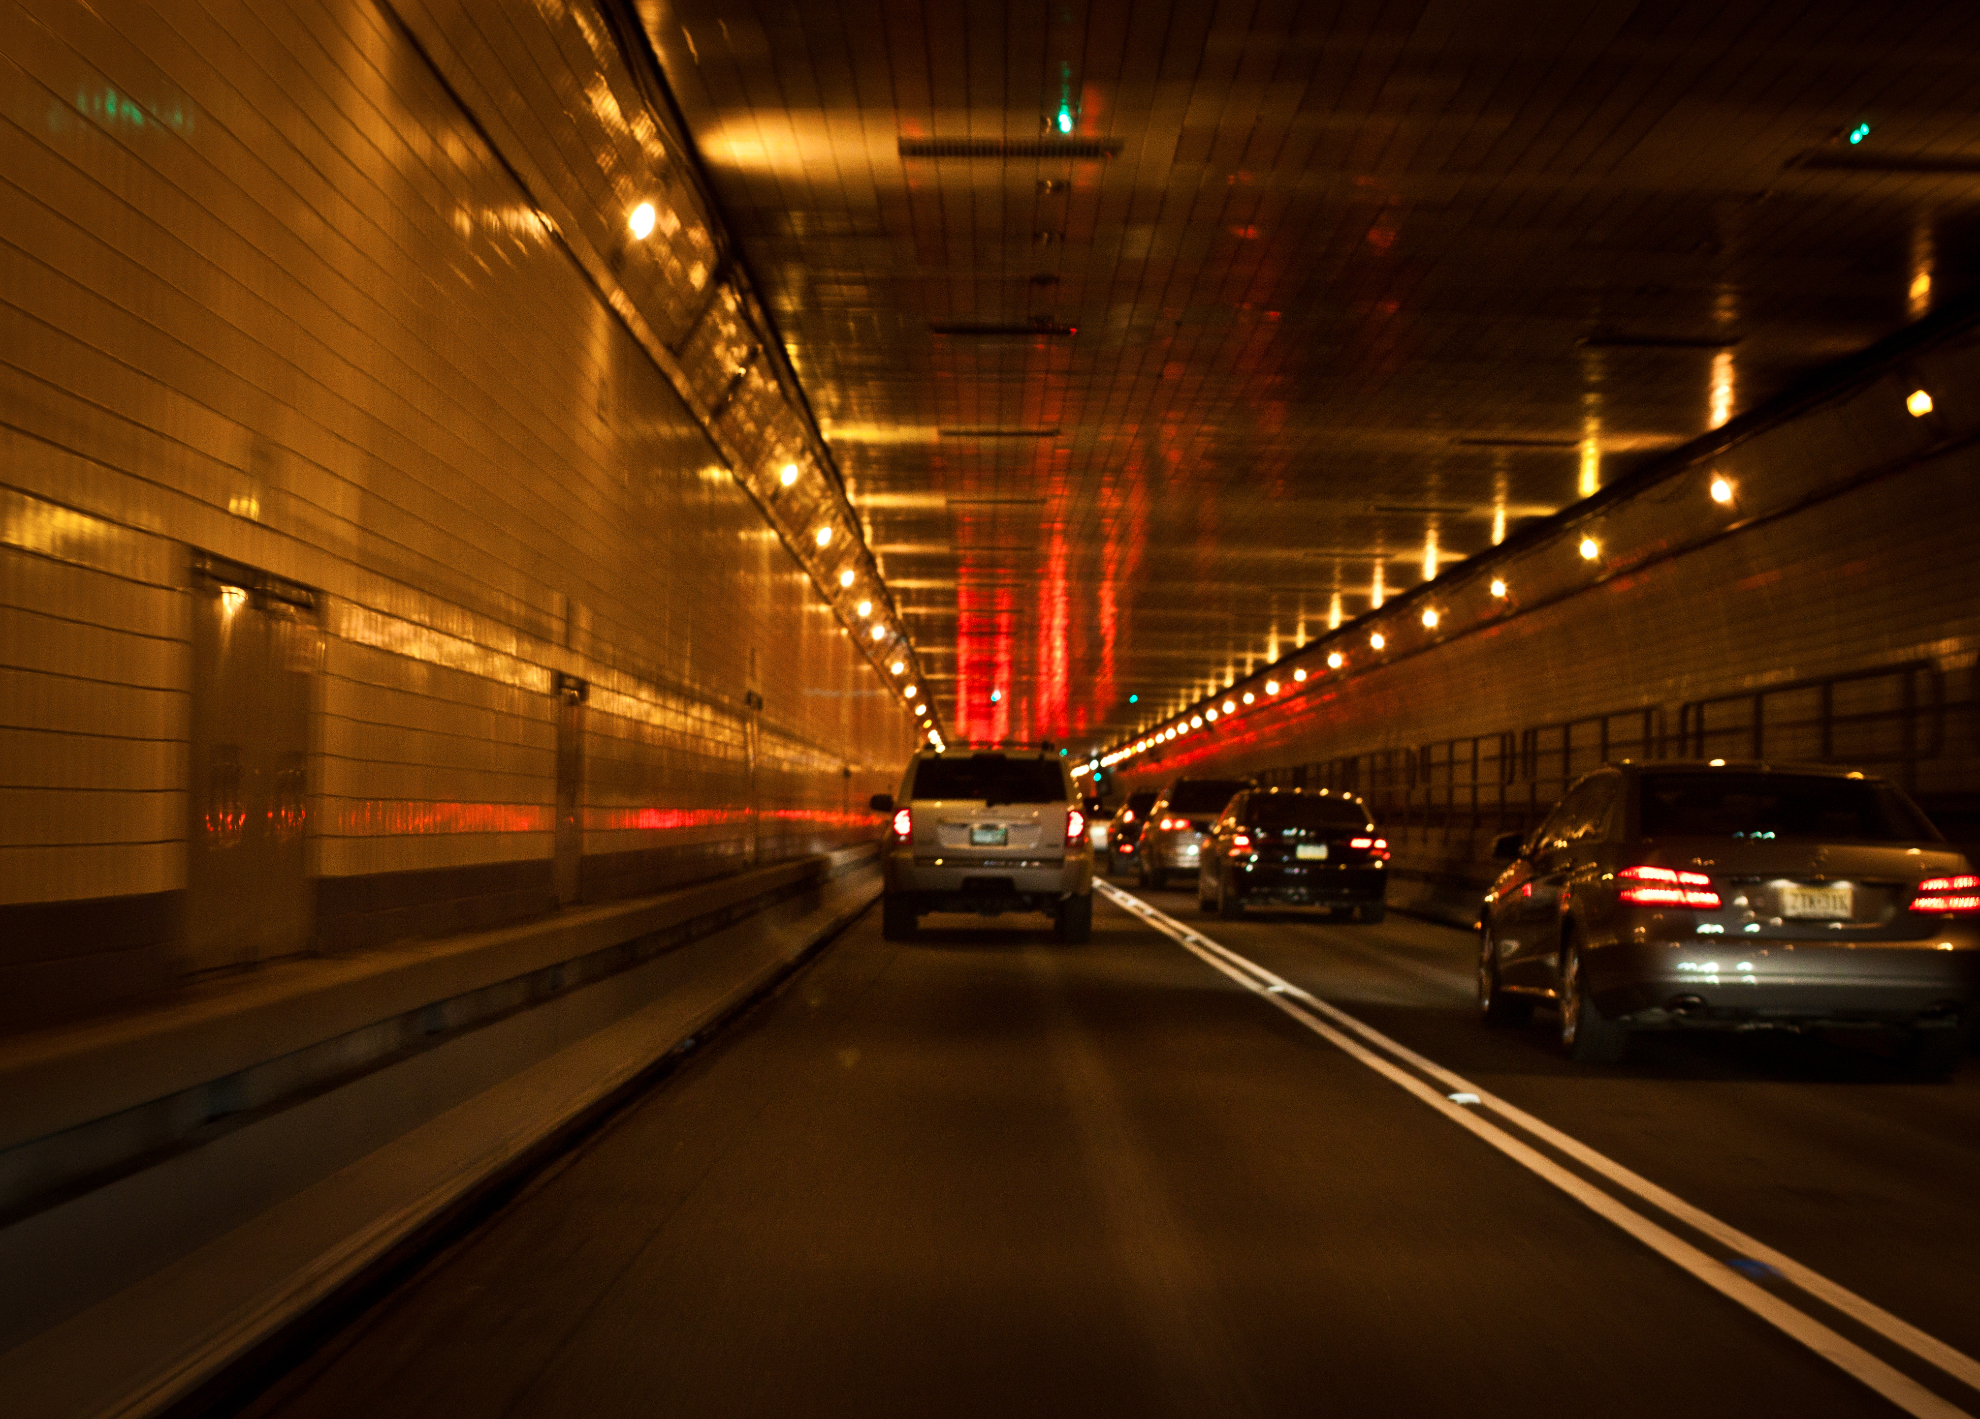 Someone Drove Into Oncoming Traffic In Lincoln Tunnel